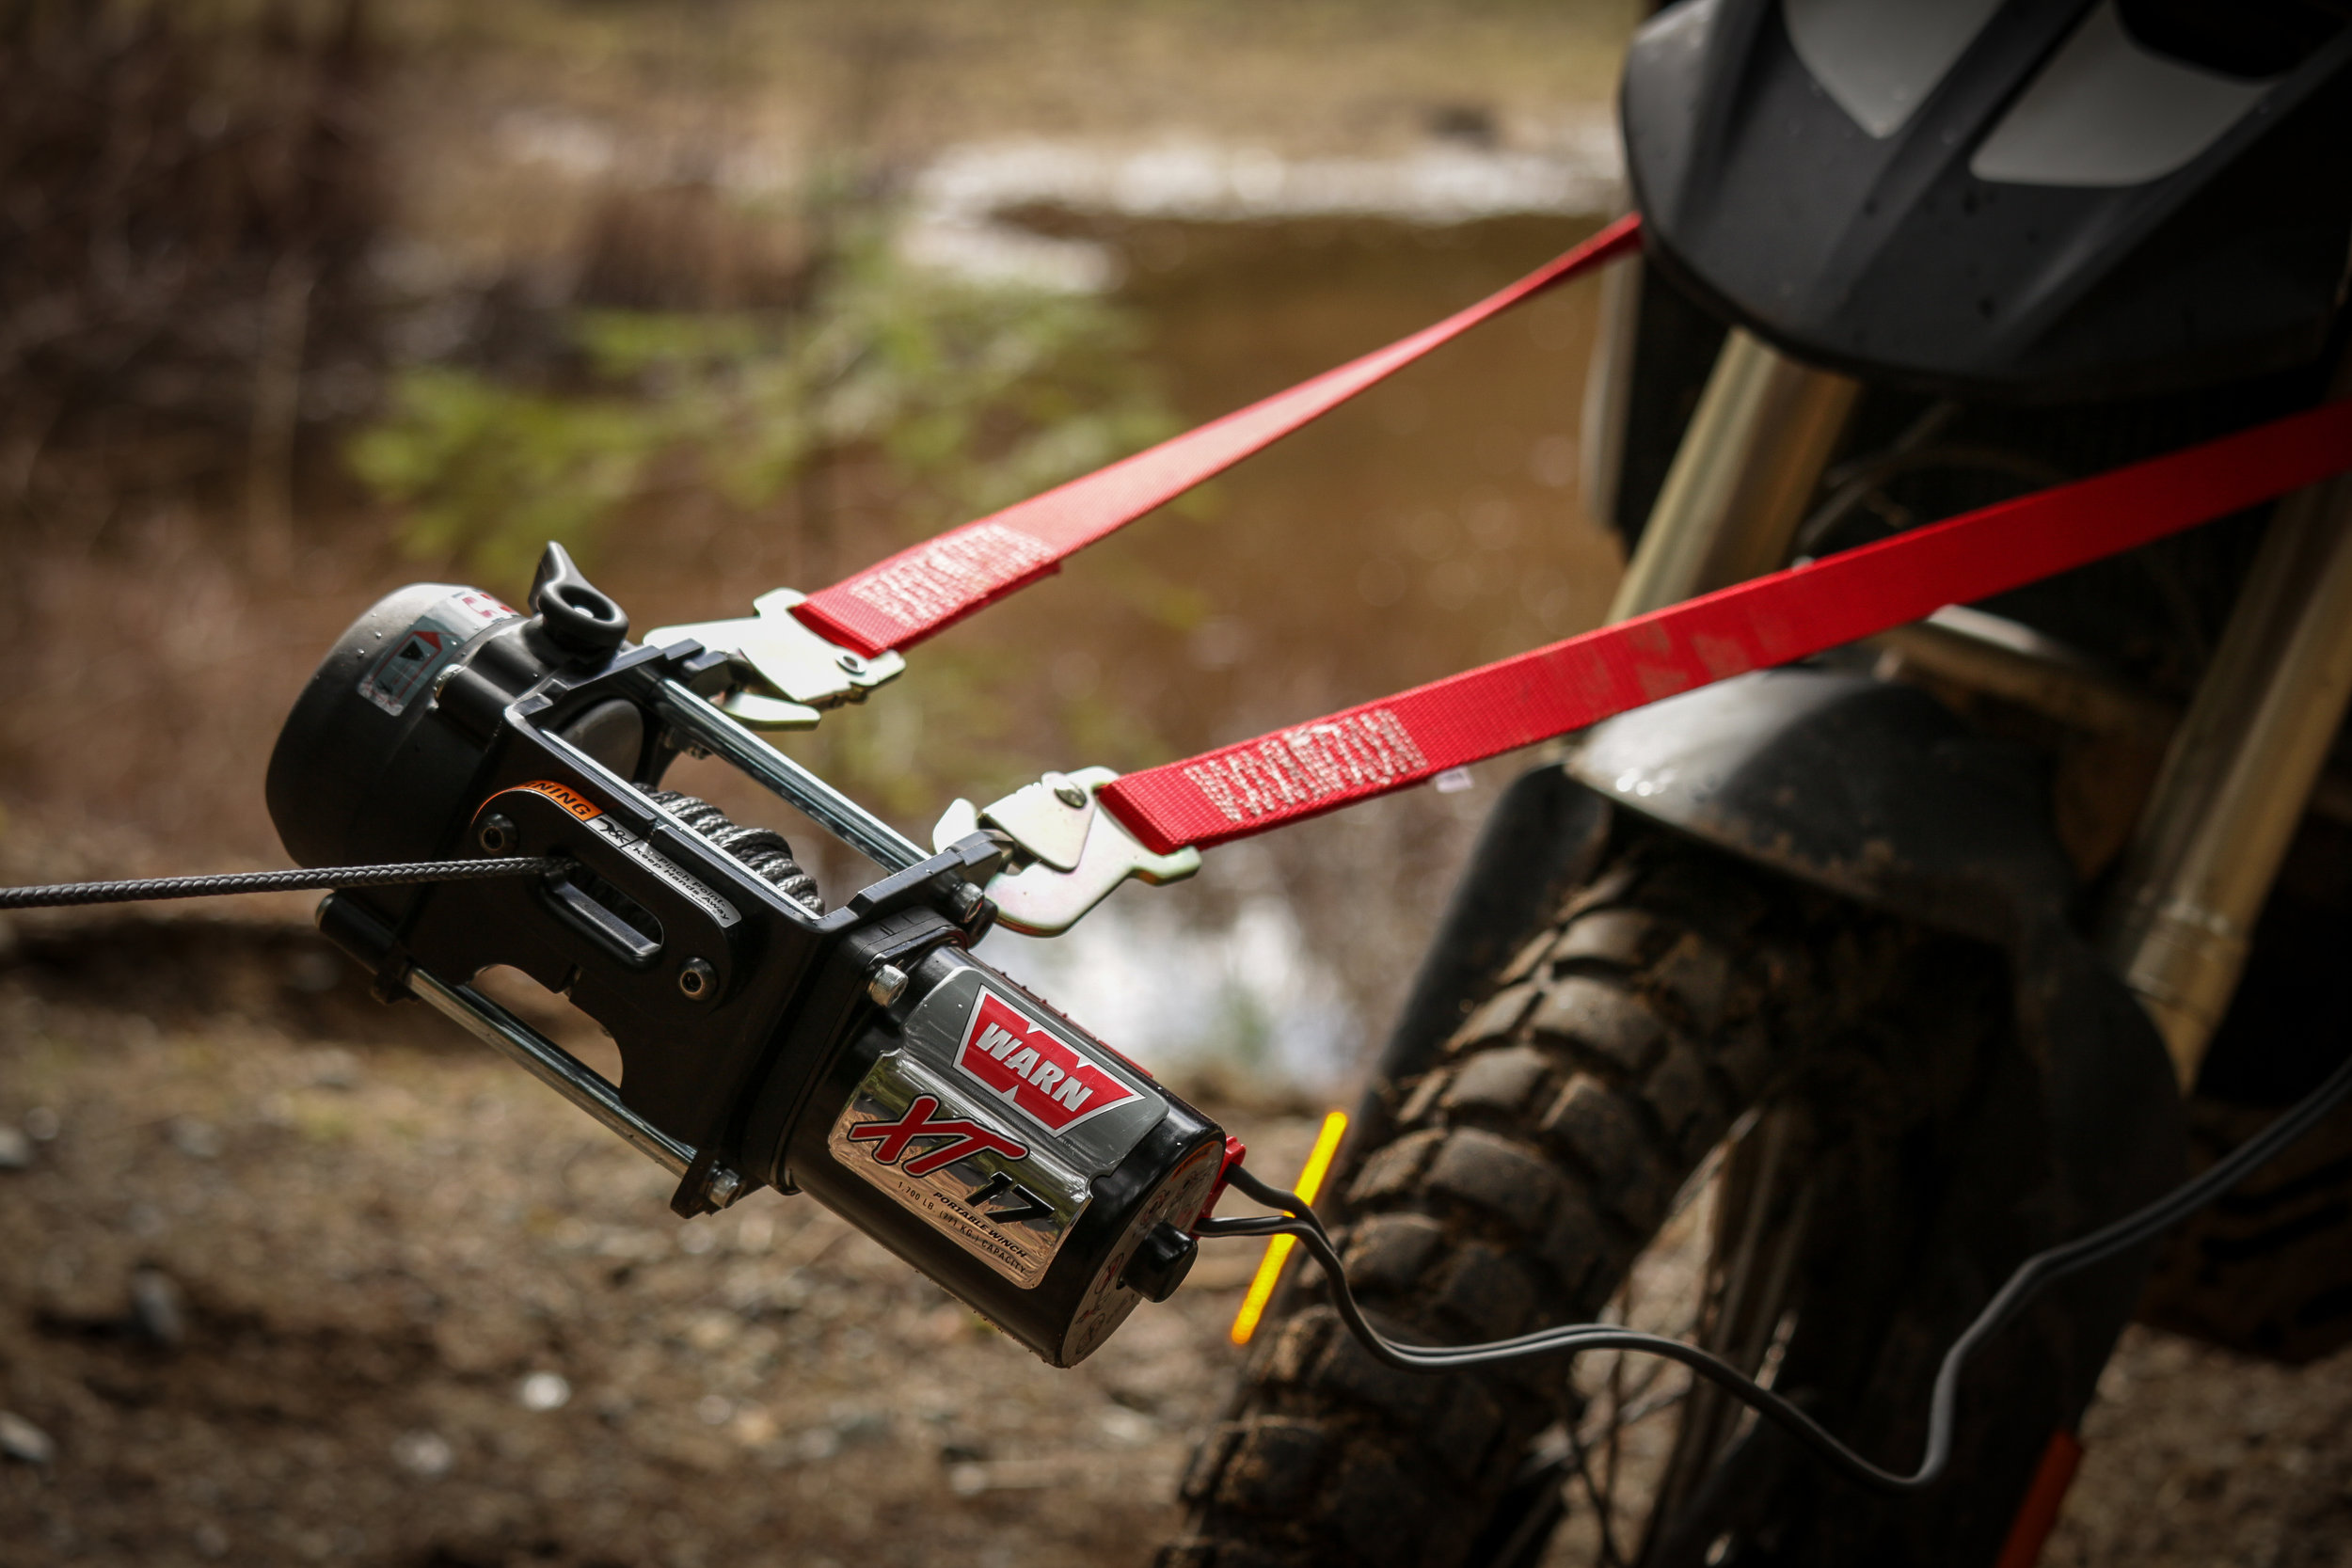 Motorcycle Extraction Gear - Adventure Rider Radio Motorcycle Podcast (1 of 1)-26.jpg